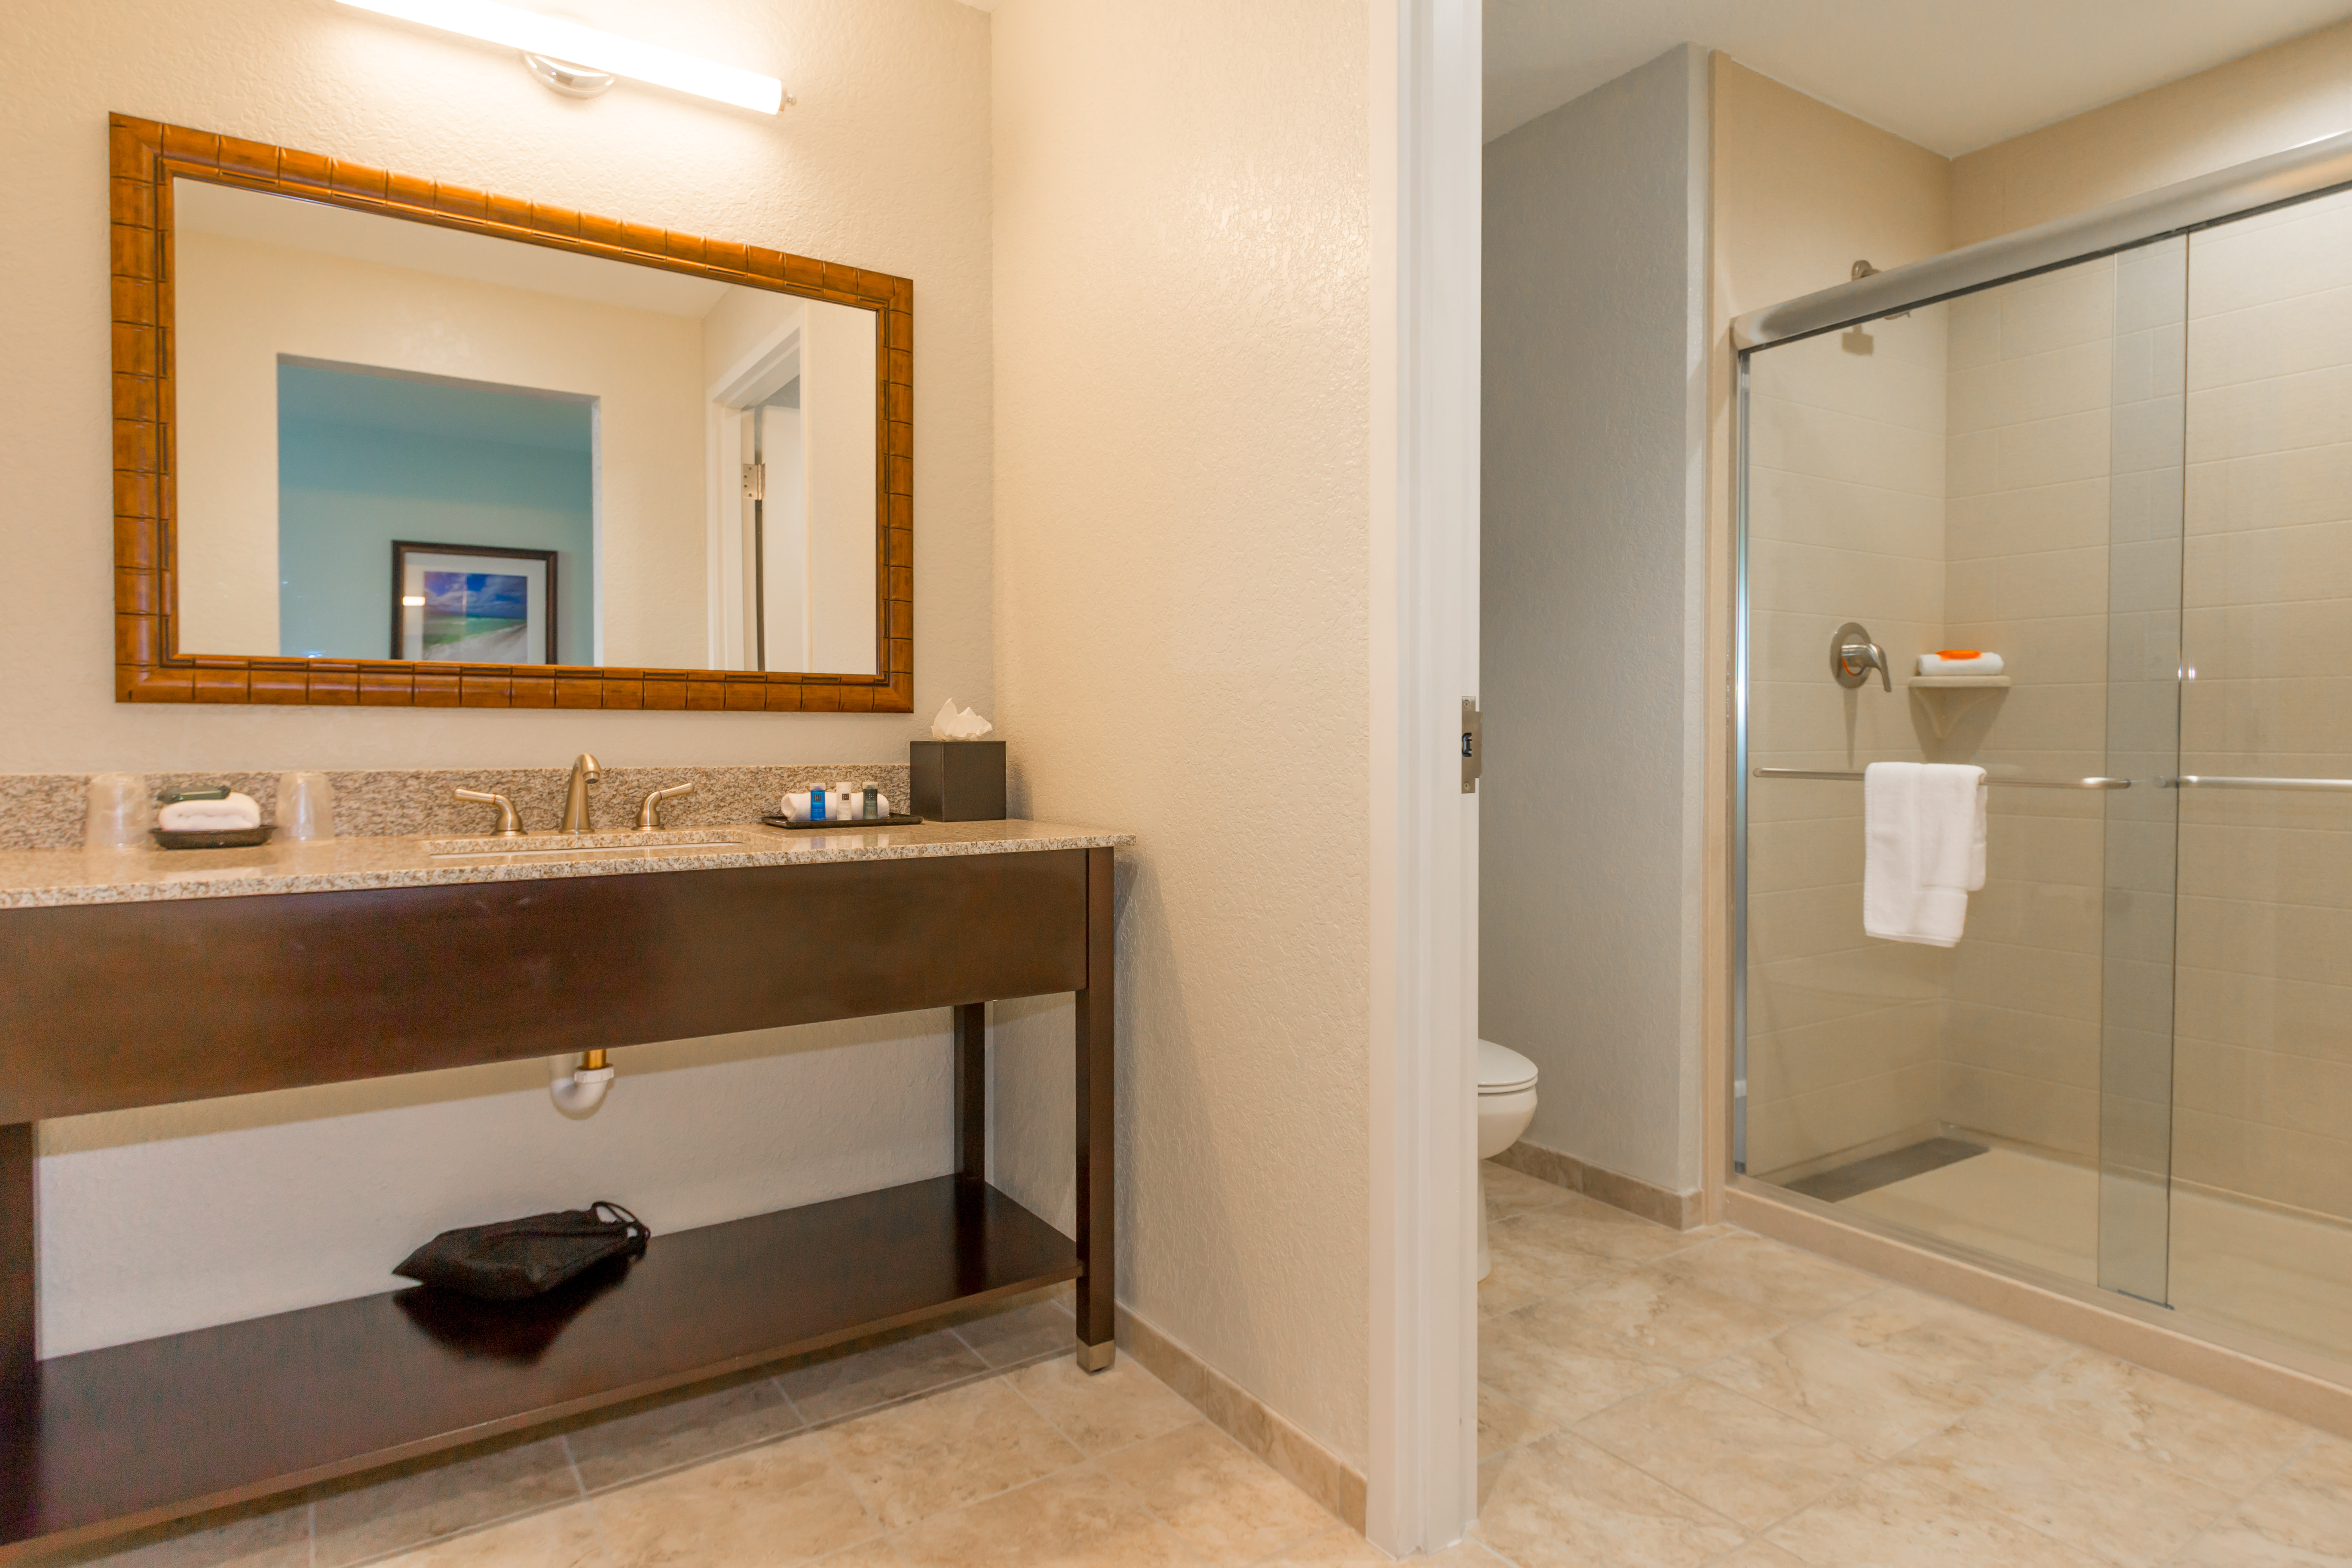 Hotel Rooms Suites In Clearwater Beach Fl Edge Hotel